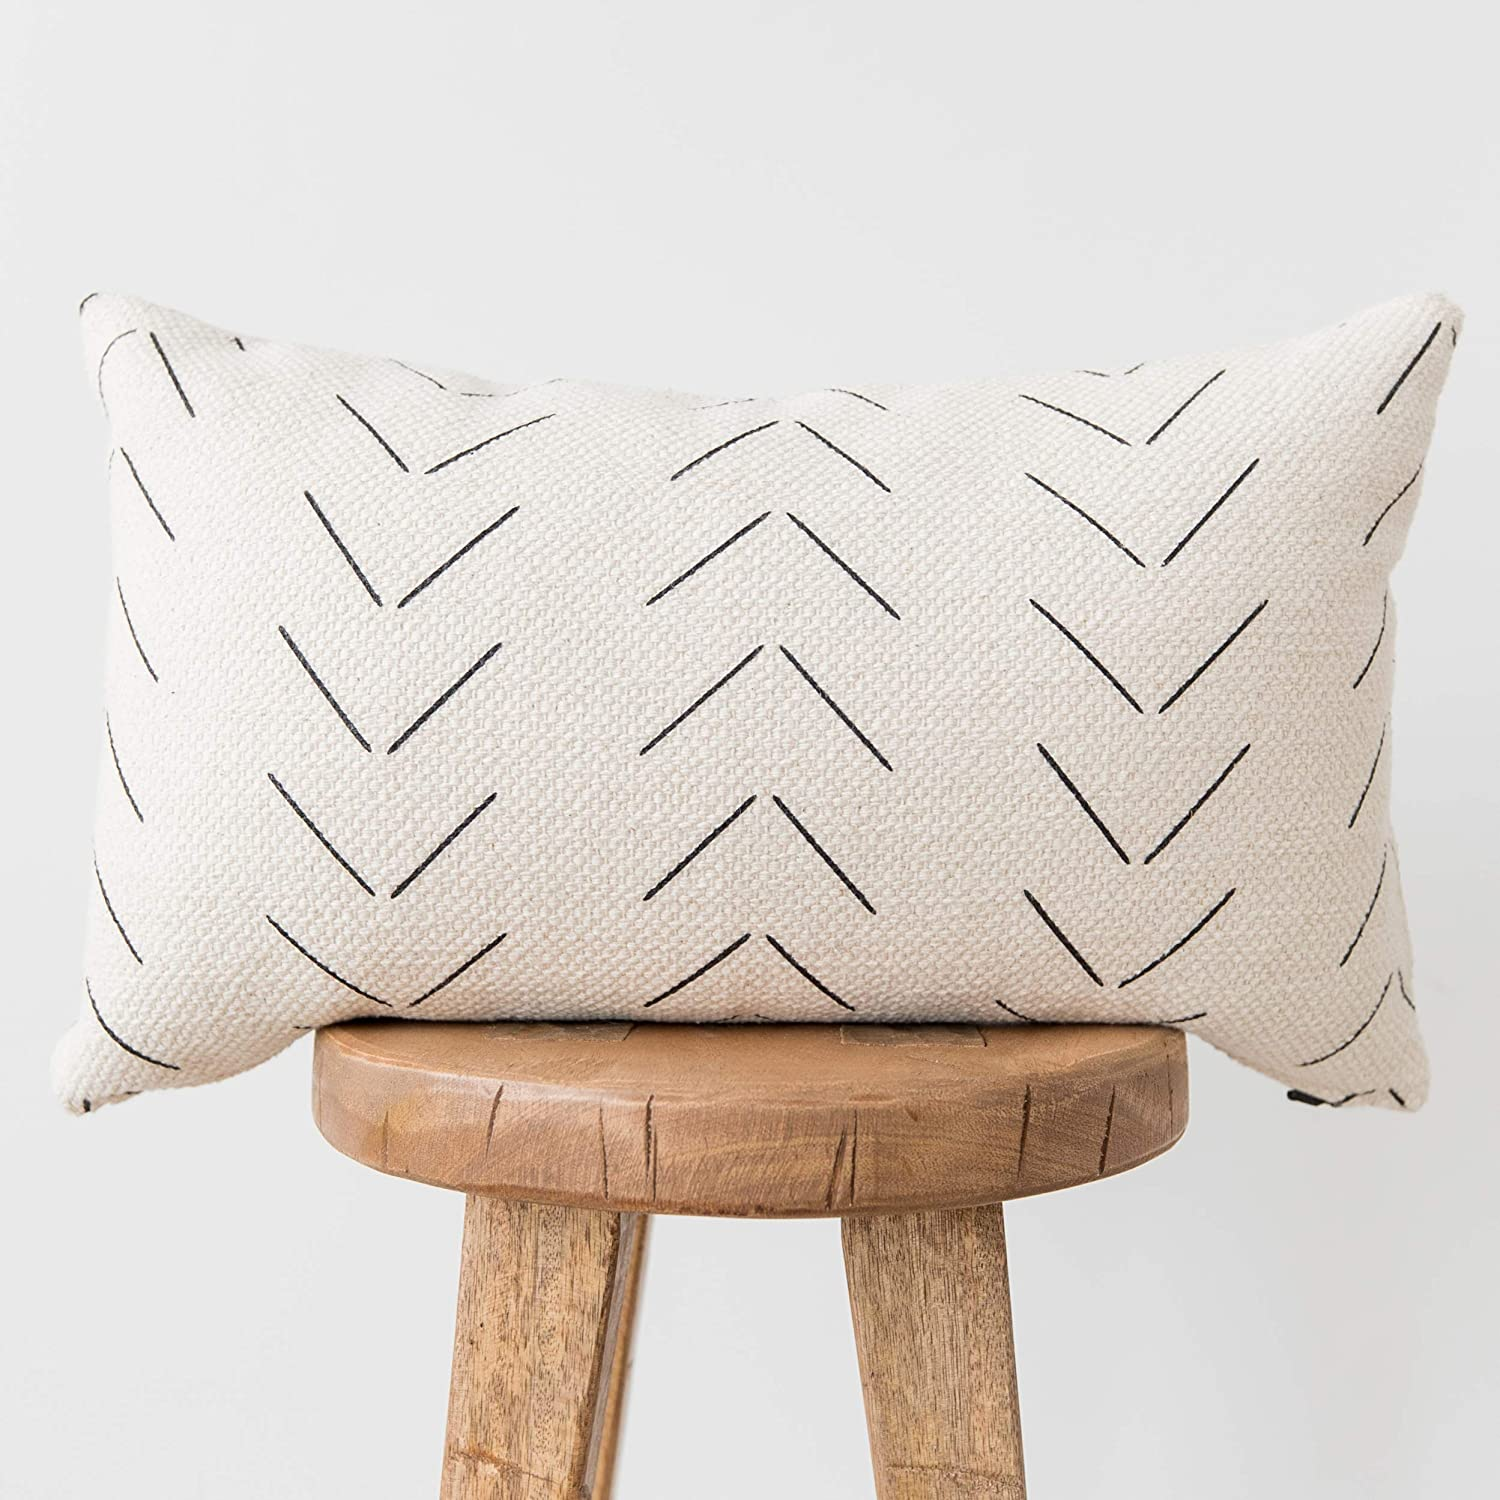 12 x 20 or Bed 12x20 12x26 12x40 inch Modern Quality Design 100/% Thick Woven Cotton Mudcloth MAZA Lumbar Sofa Woven Nook Decorative Lumbar Throw Pillow Cover ONLY for Couch